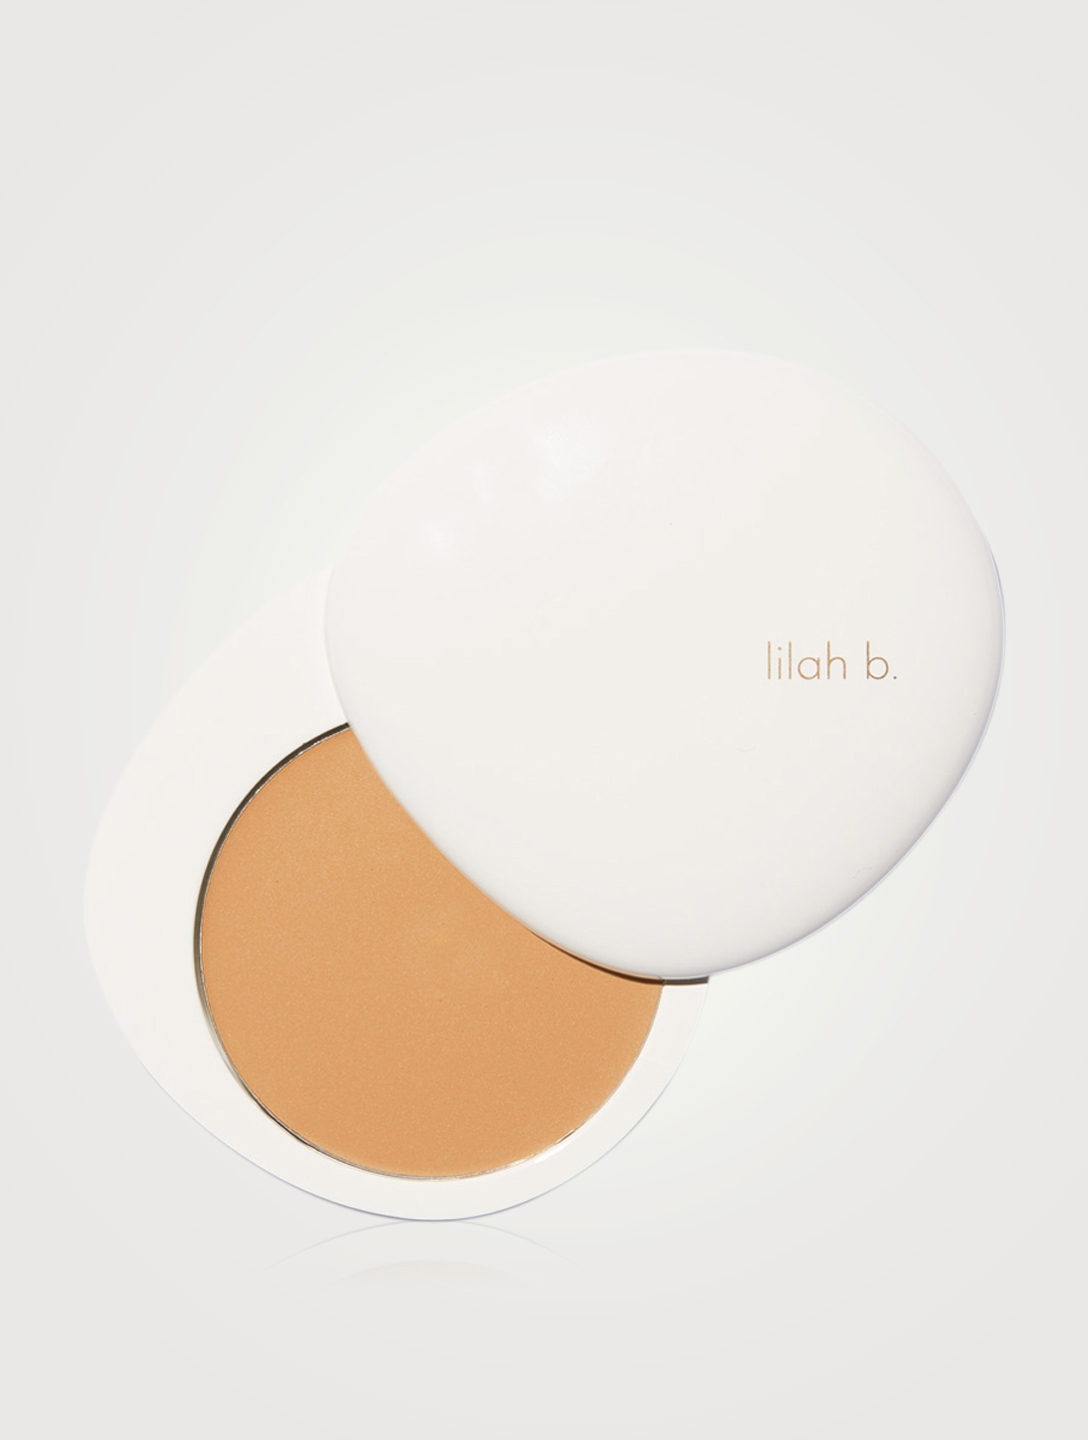 LILAH B. Marvelous Matte™ Crème Foundation Beauty Neutral